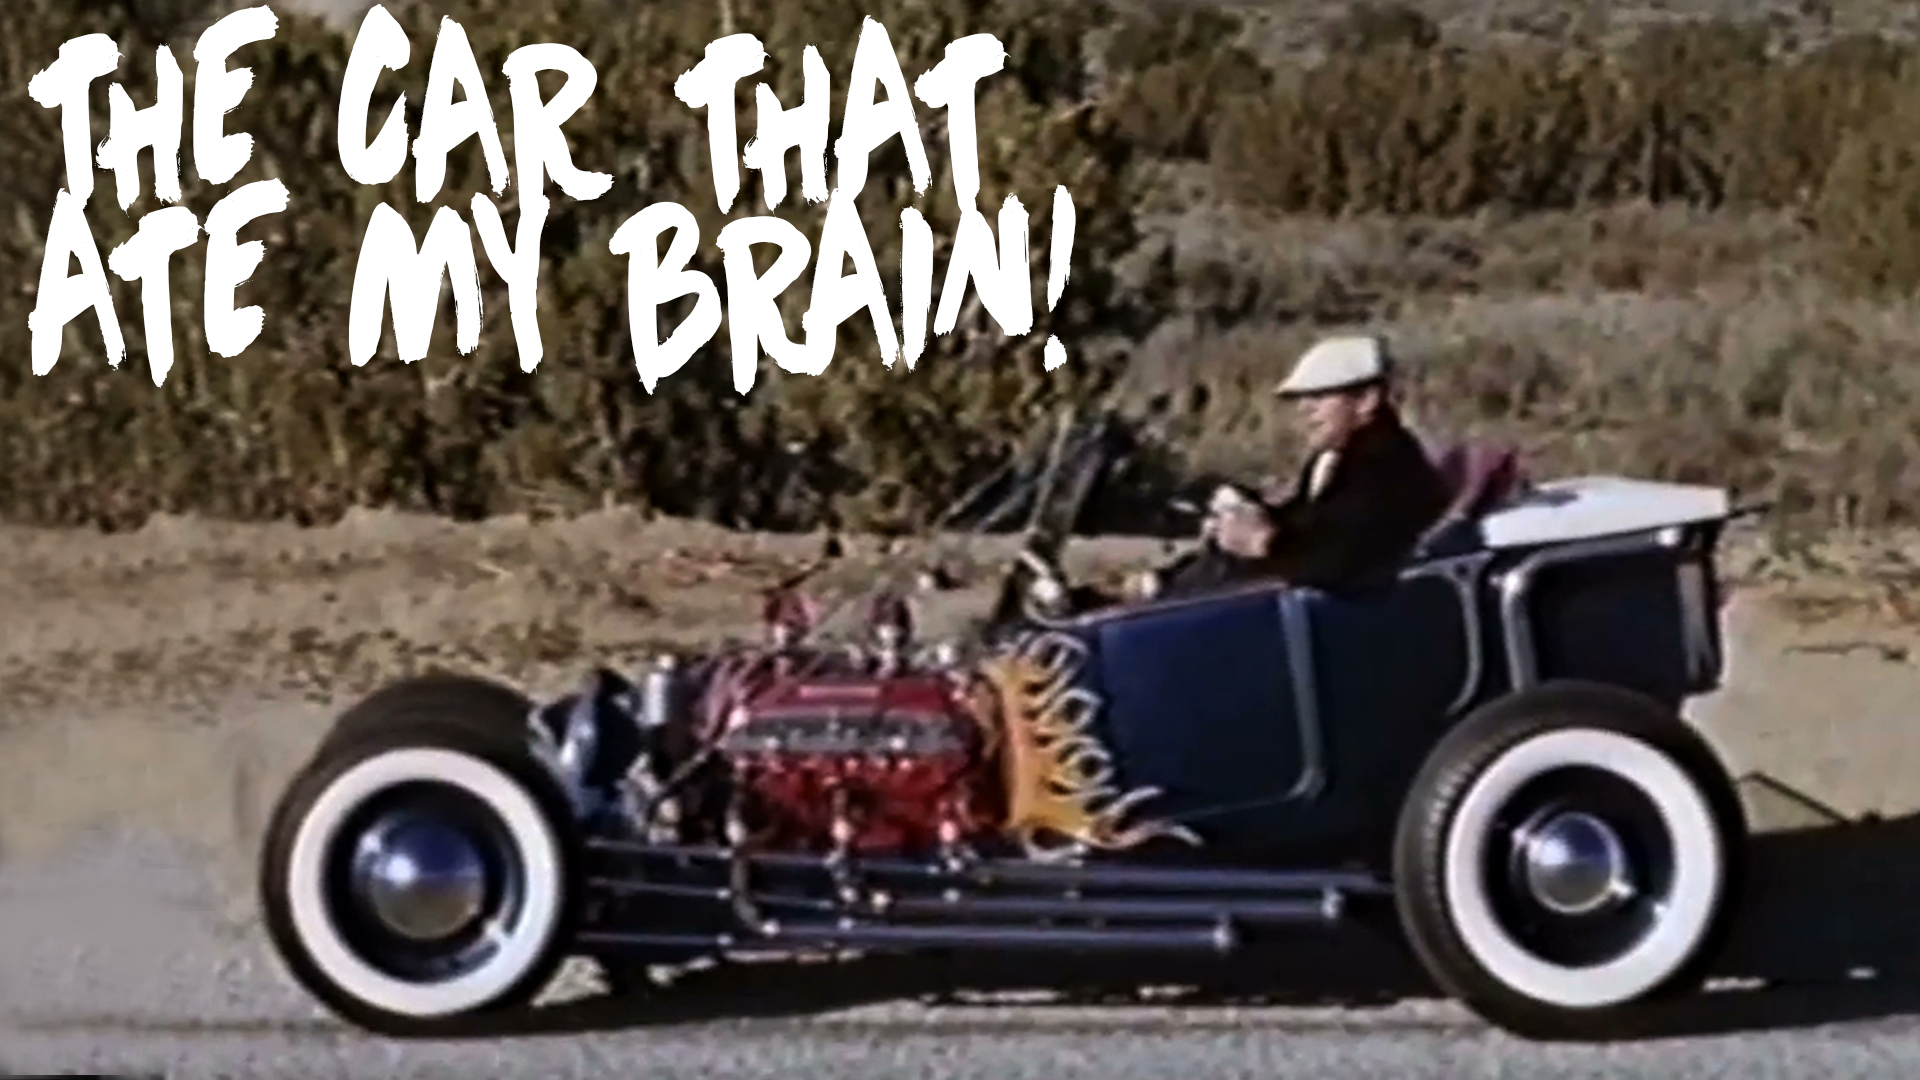 The Car That Ate My Brain!